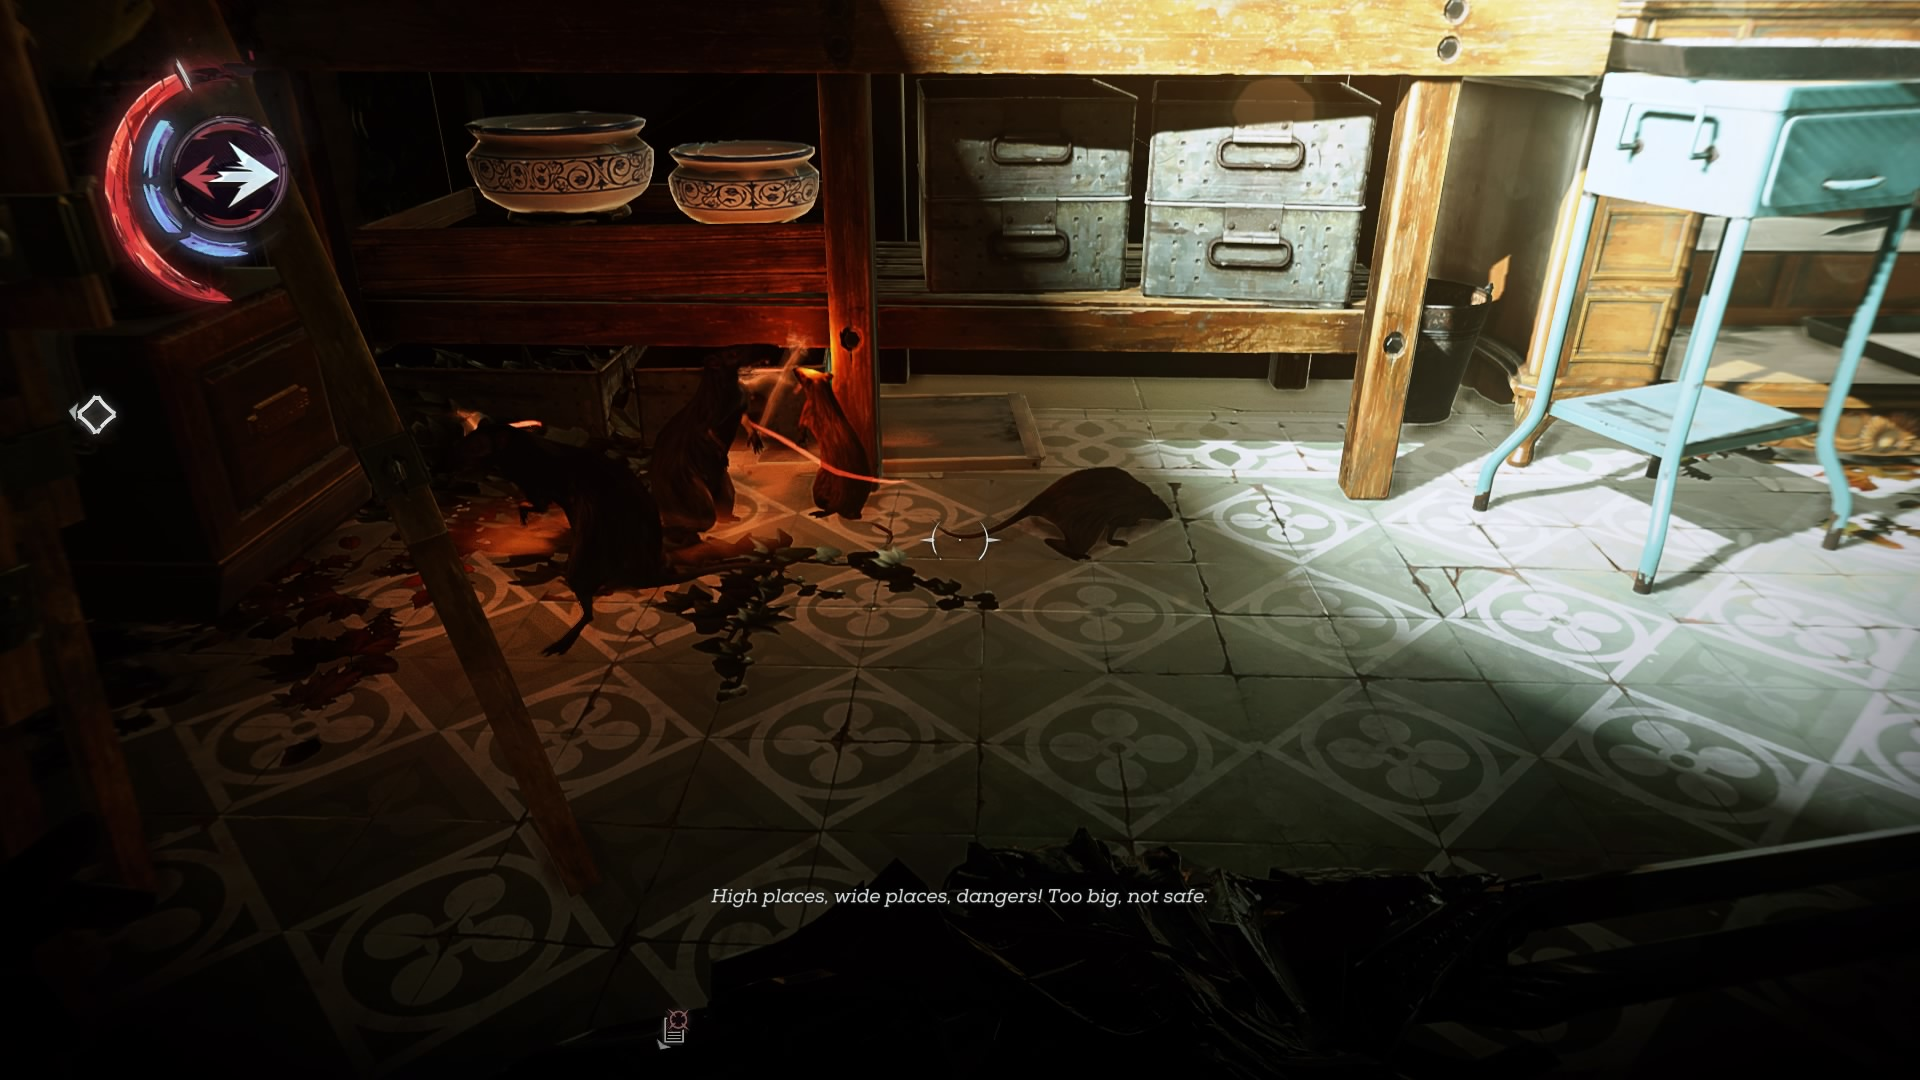 Dishonored-Lamortdel-Outsider PS4 Test 013